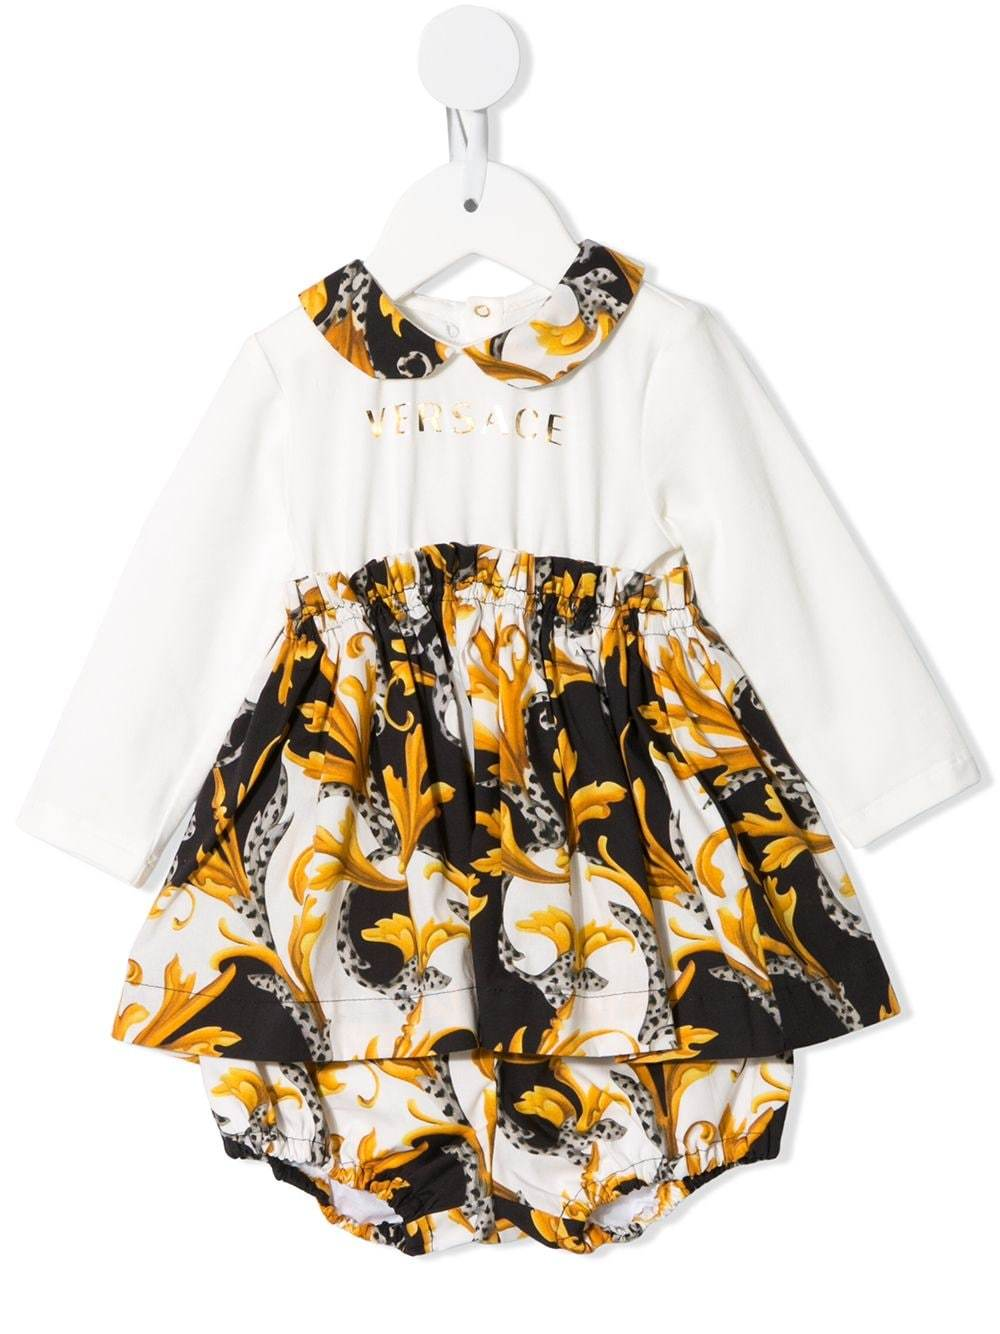 VERSACE KIDS Baby Baroque Print Dress White/Gold